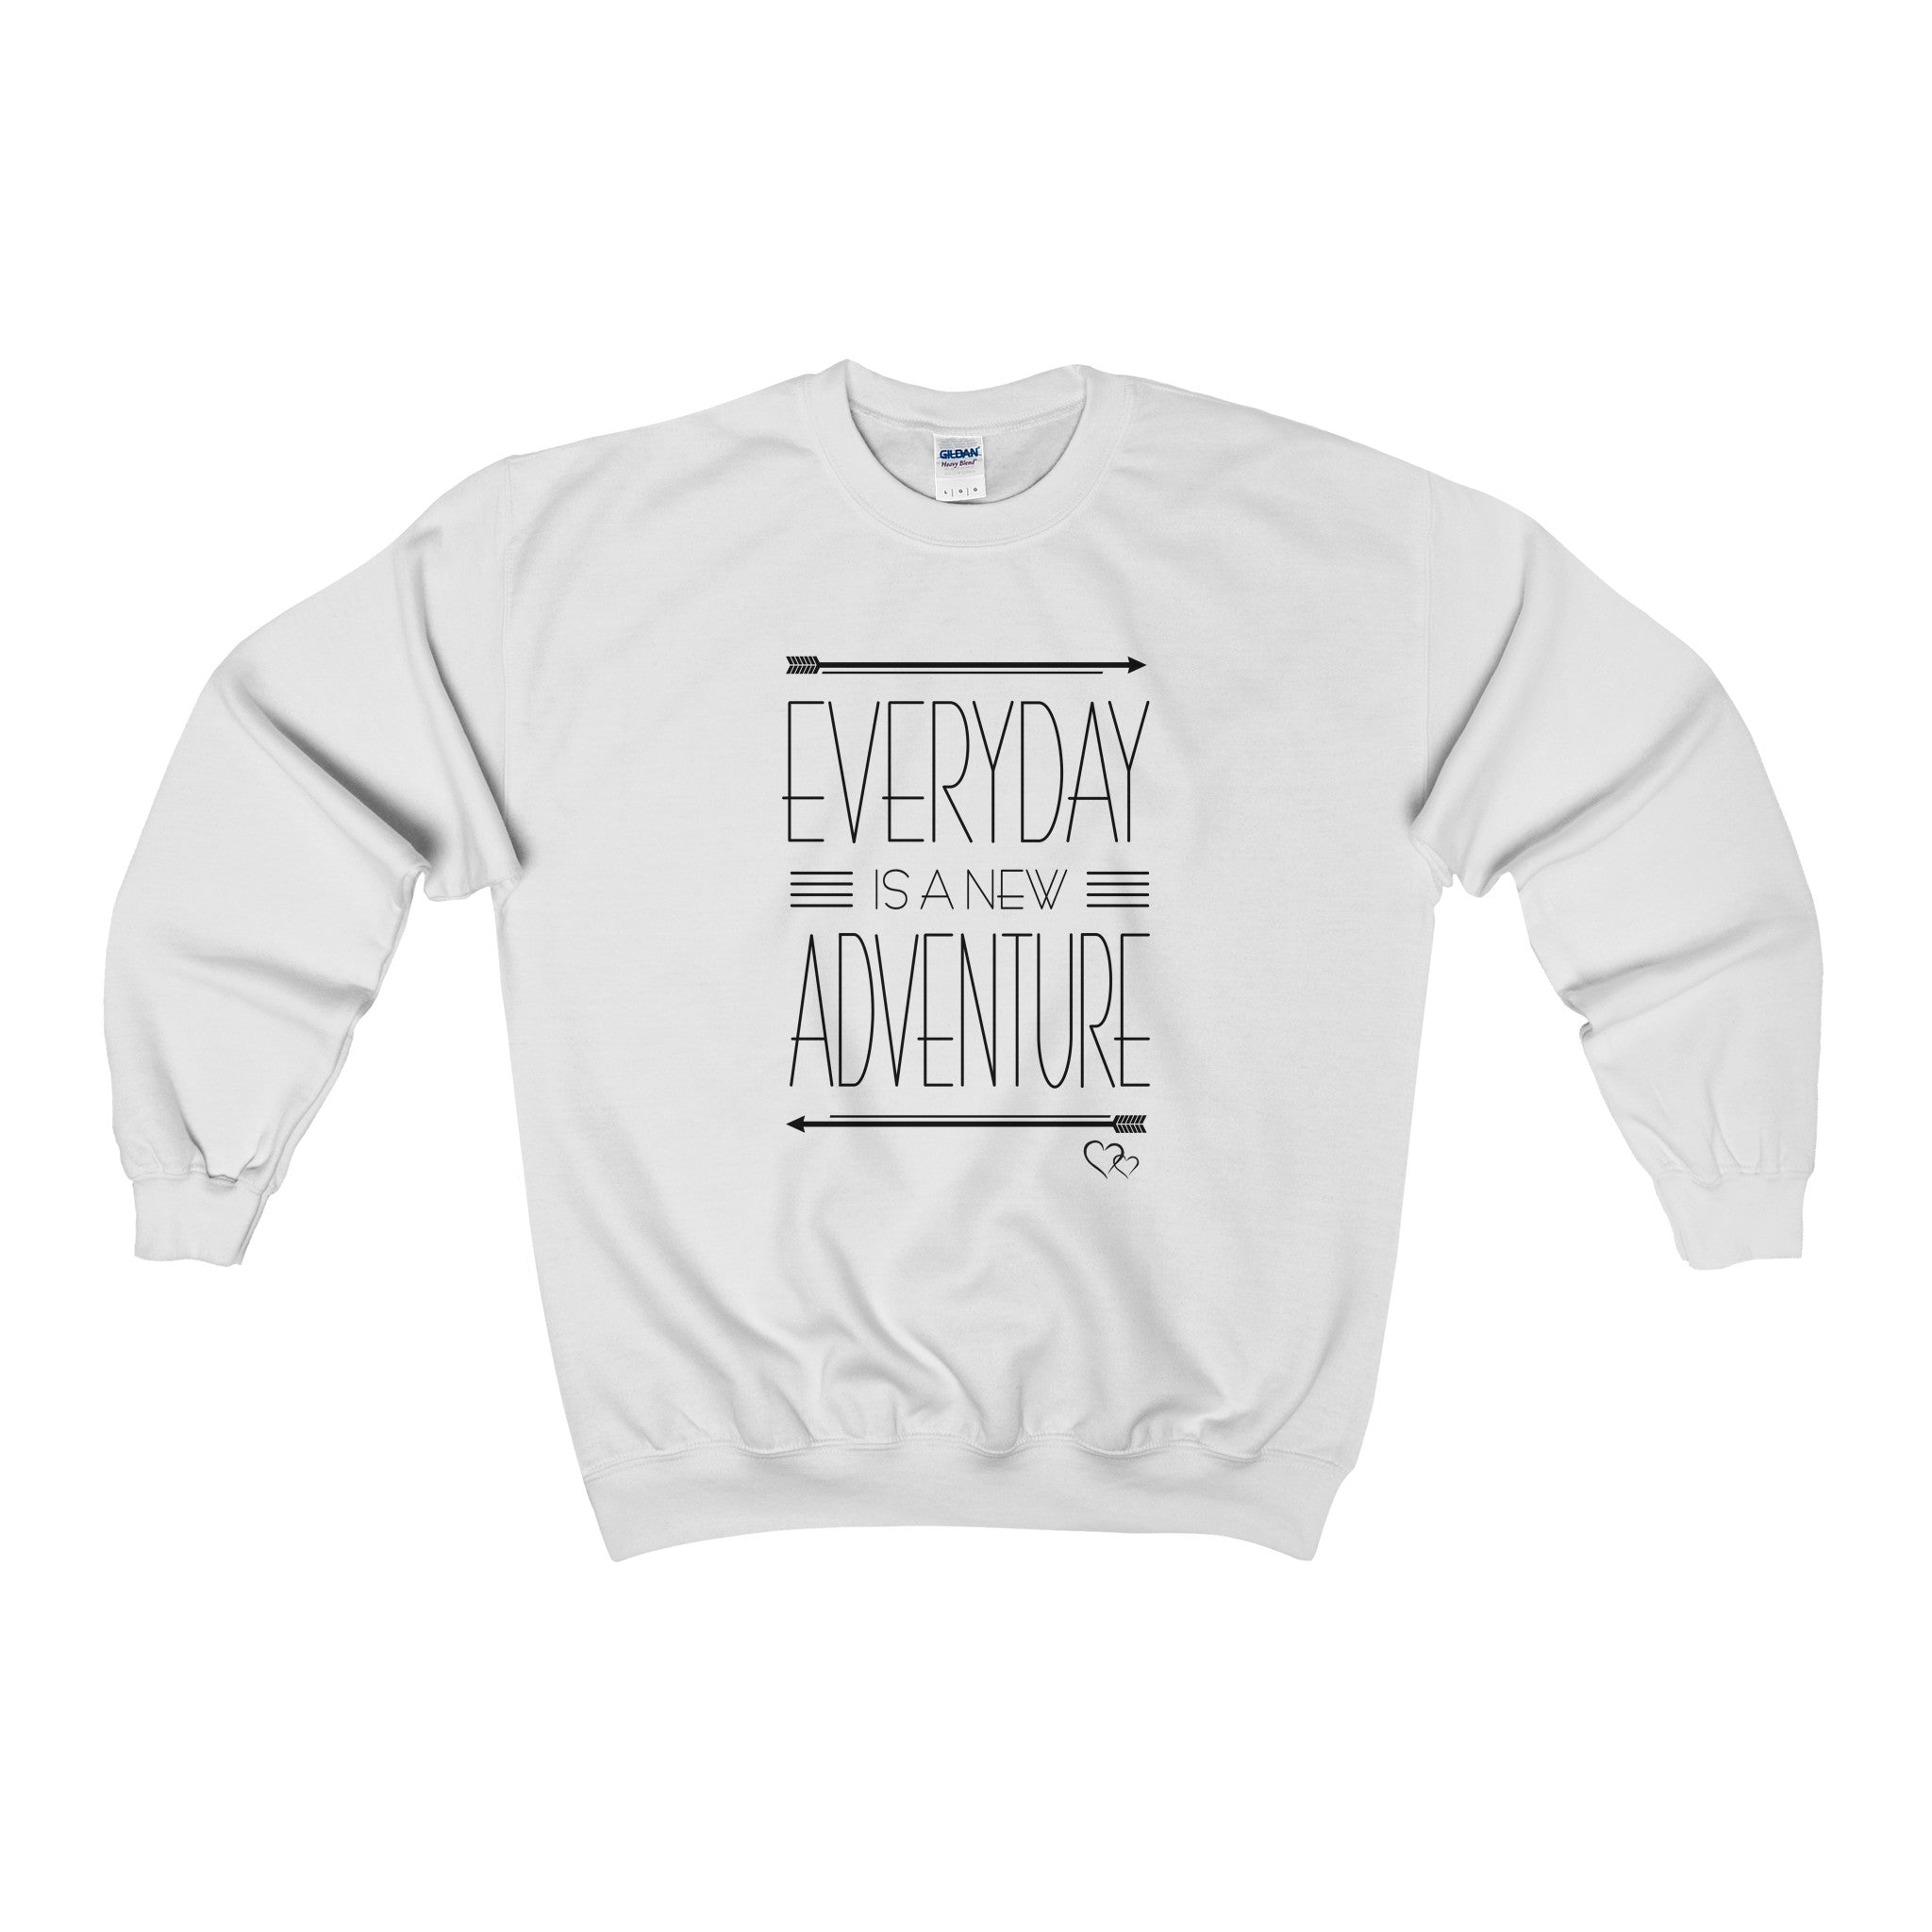 EVERYDAY ADVENTURE - Sweatshirt (Unisex)